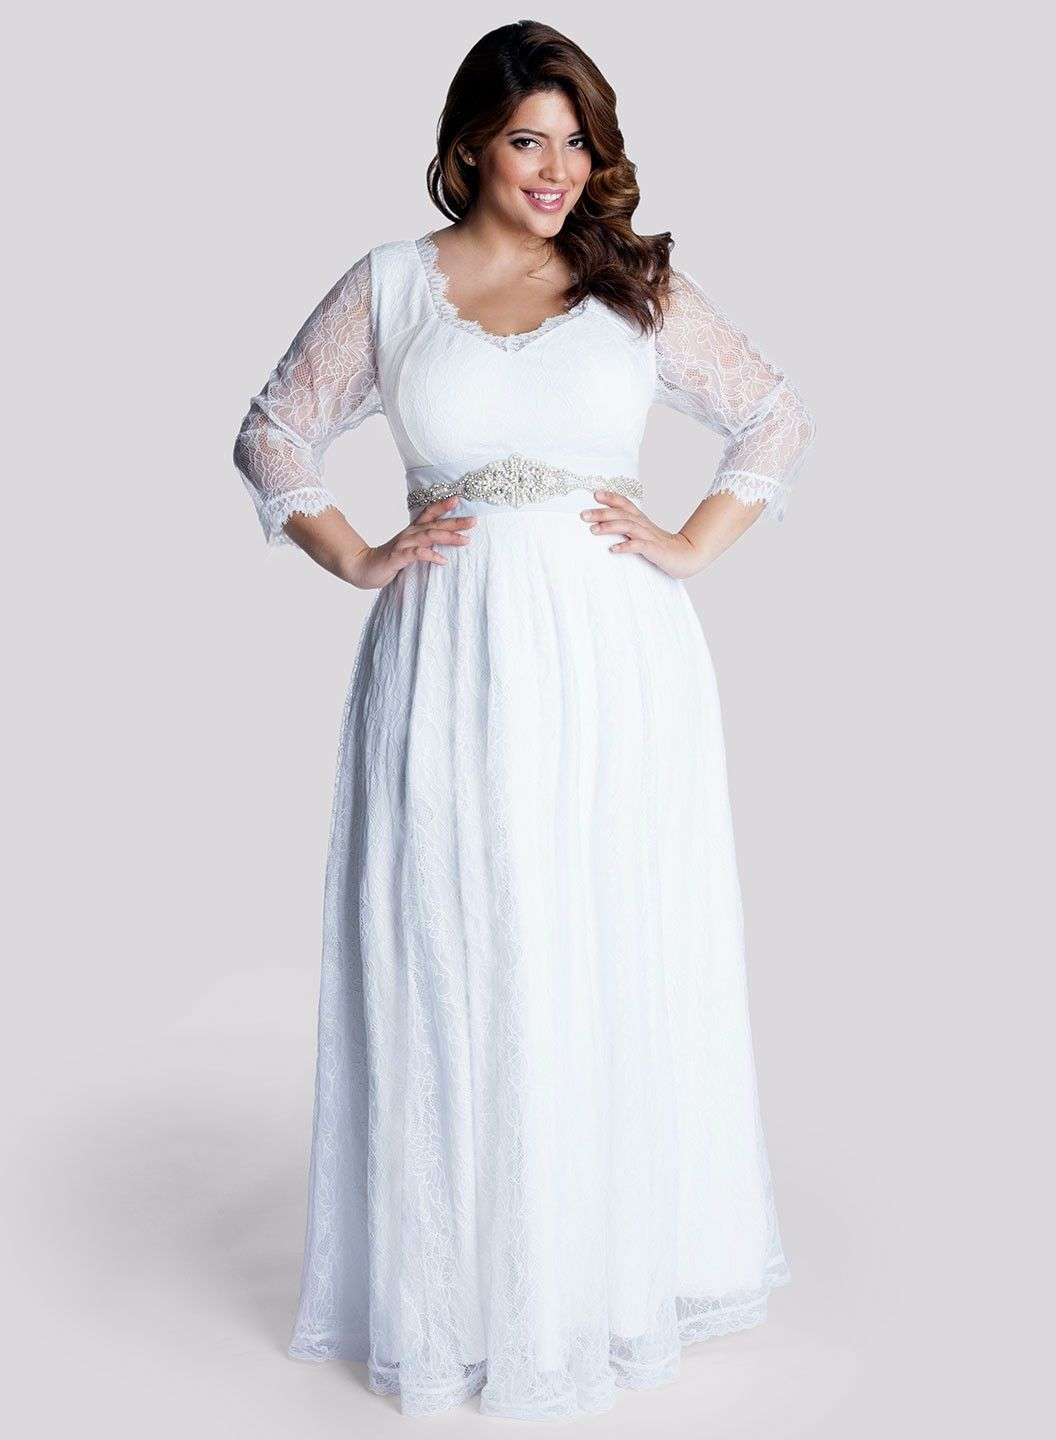 Plus size wedding dresses beautiful looks for women with curves